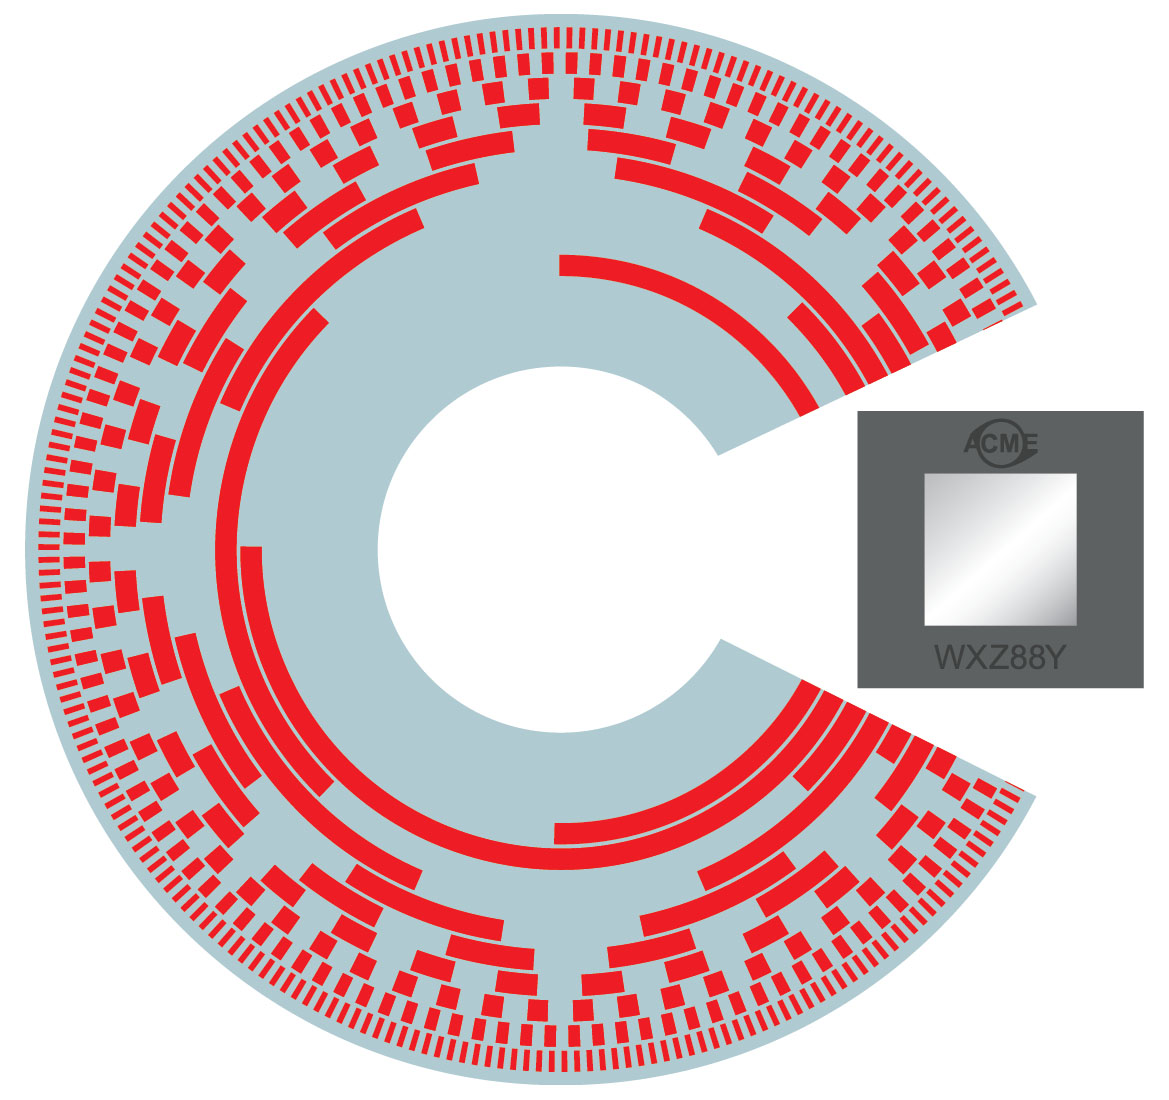 Example of an absolute-coded optical encoder disk